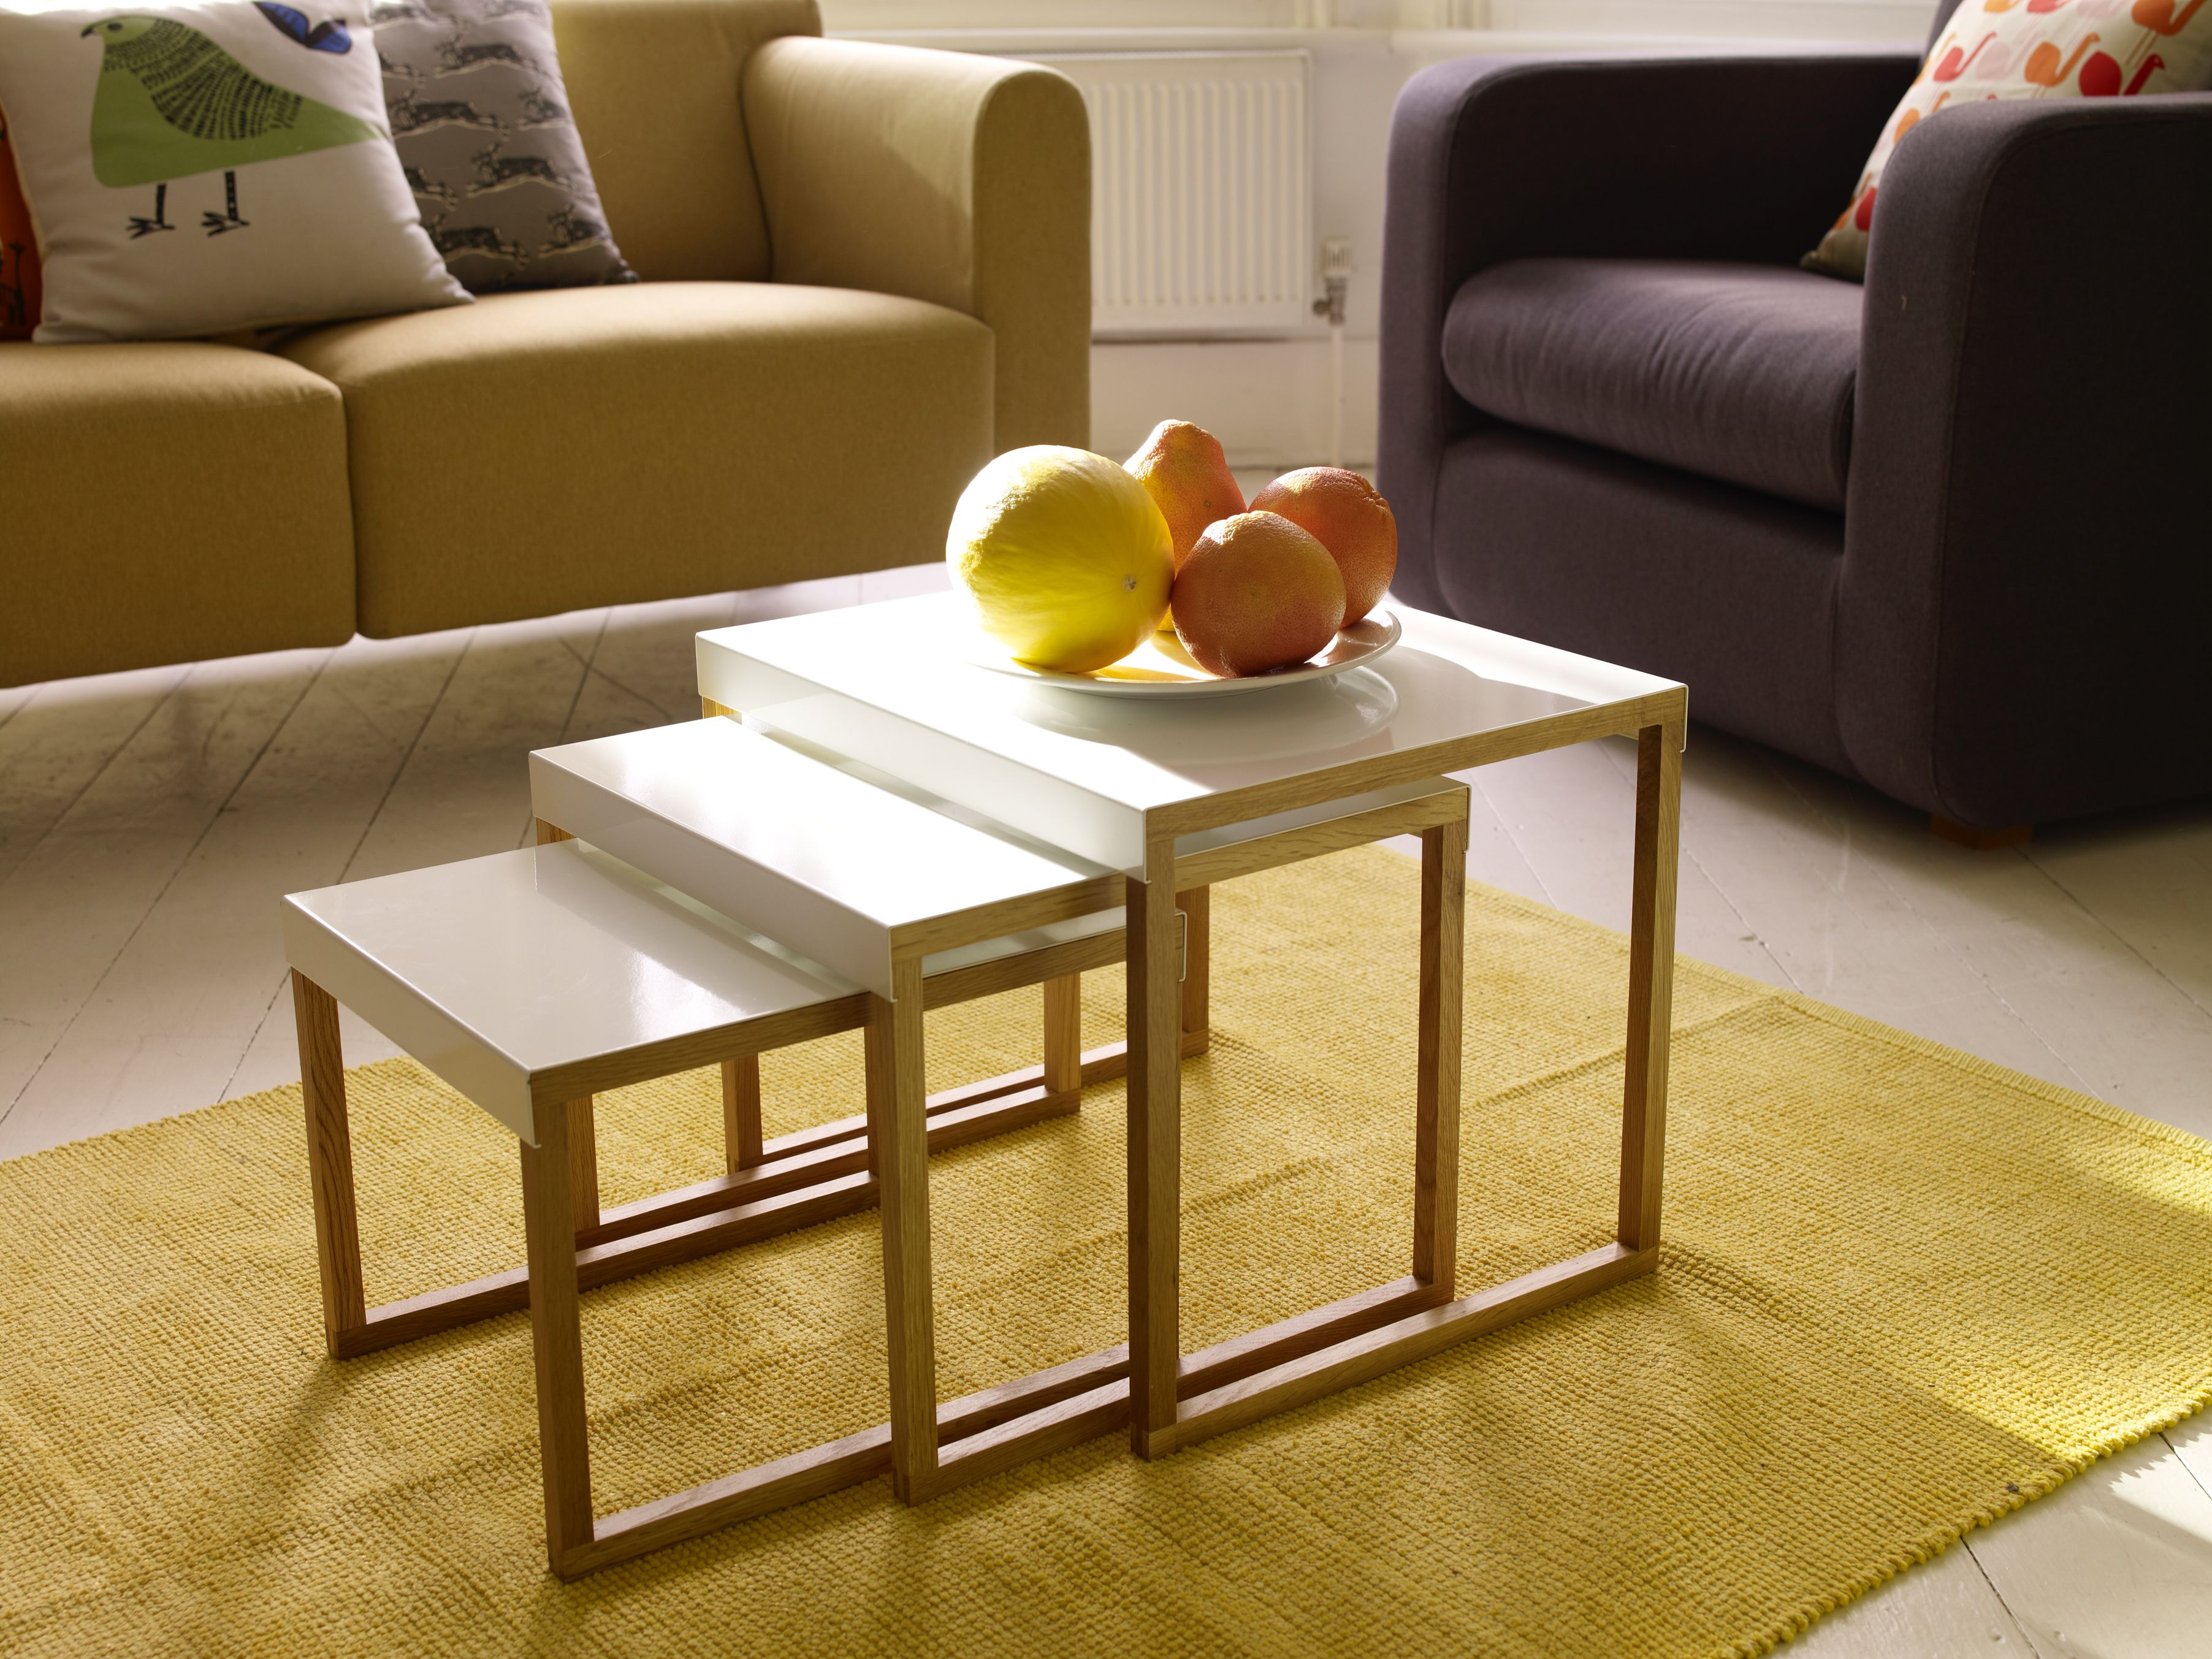 Kilo nest of white tables Perfect for the living room next to the